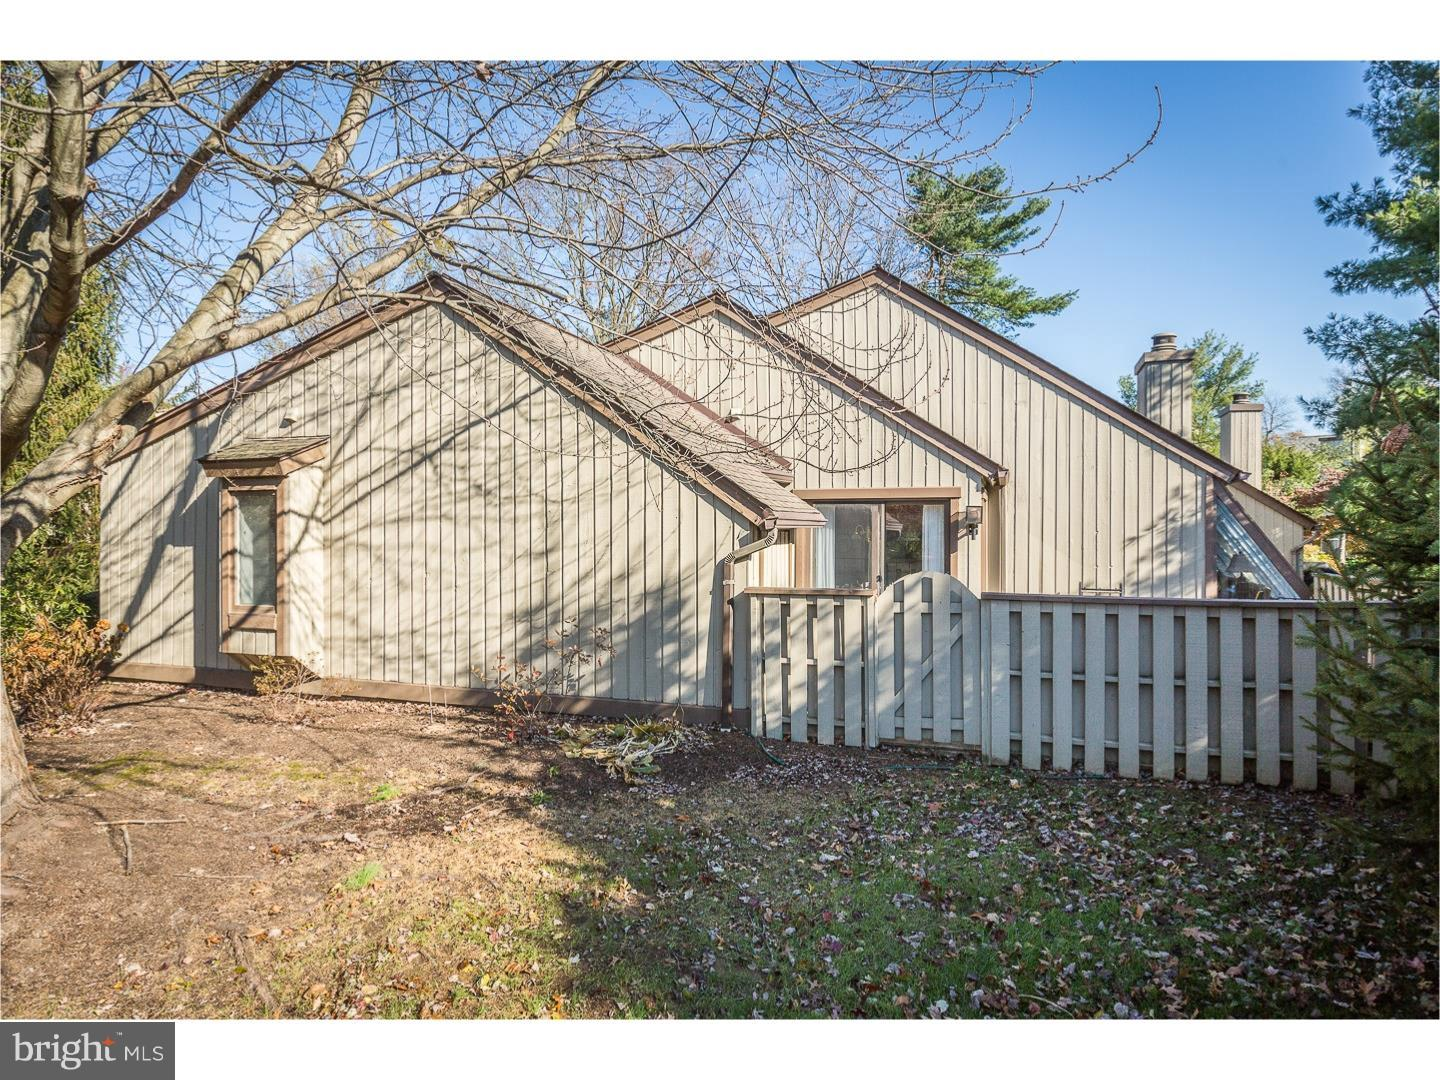 227 Chatham Way West Chester , PA 19380